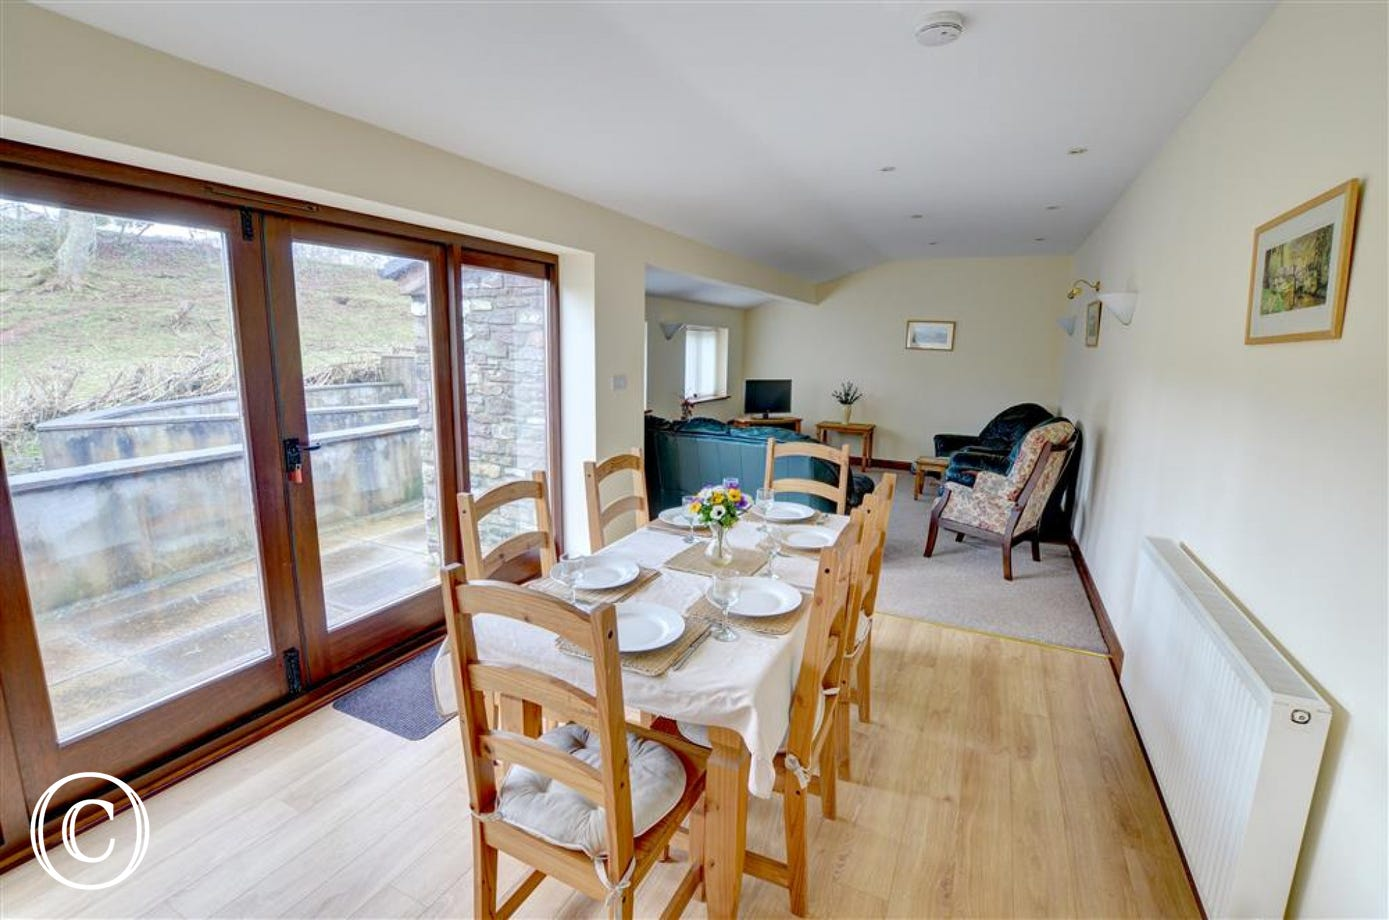 The spacious open plan living room has a dining table and chairs looking out through patio doors to the rear patio and surrounding countryside